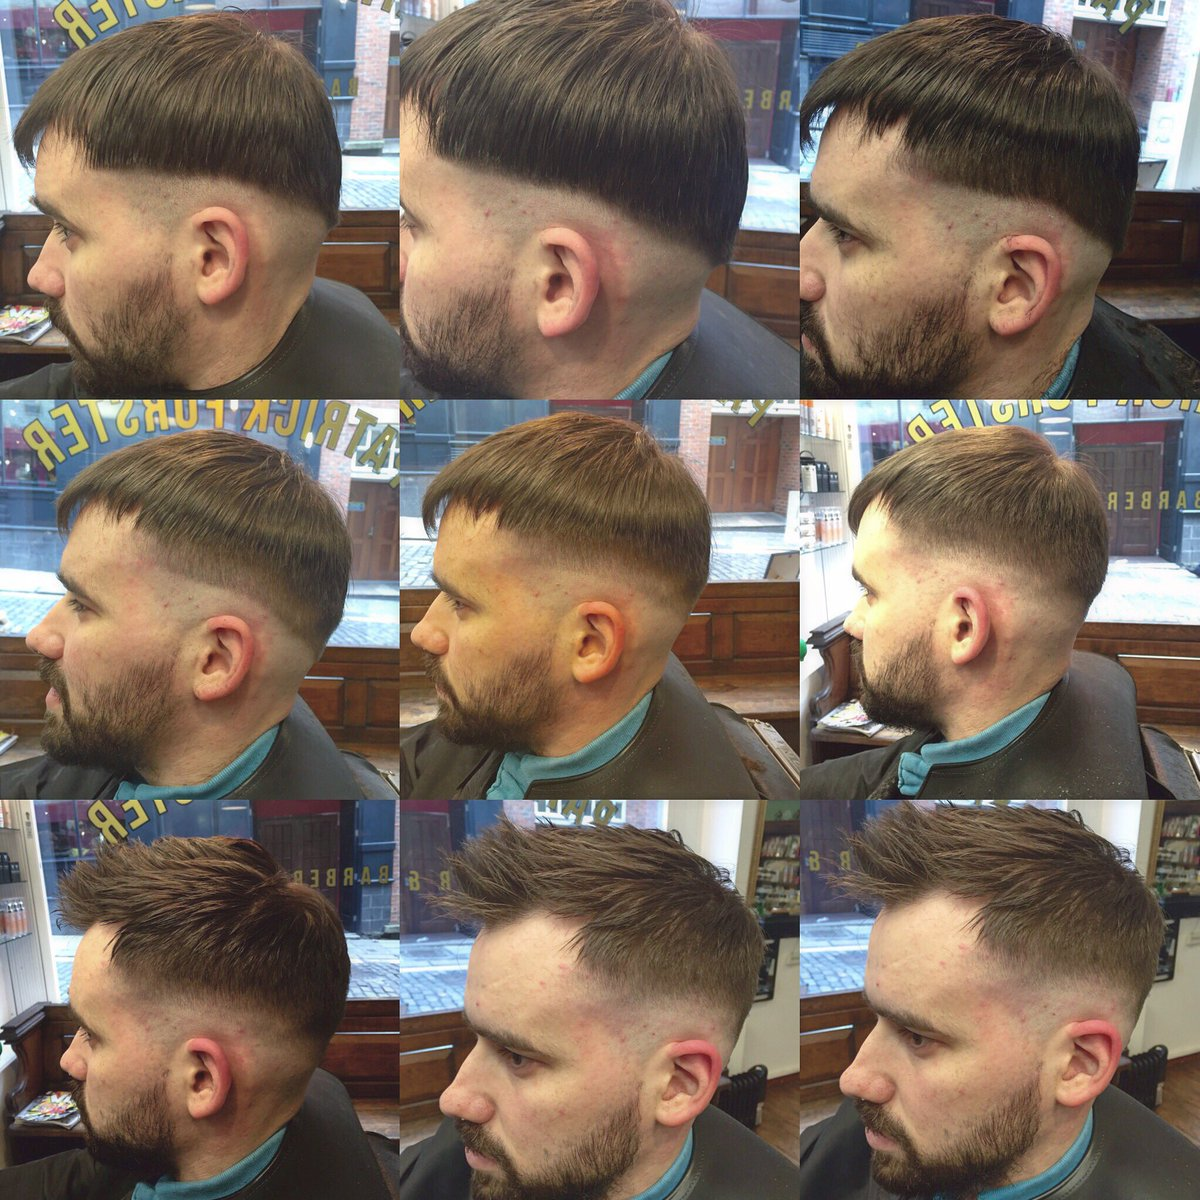 Patrick Forster On Twitter 50 Shades Of The Fade This Shows The